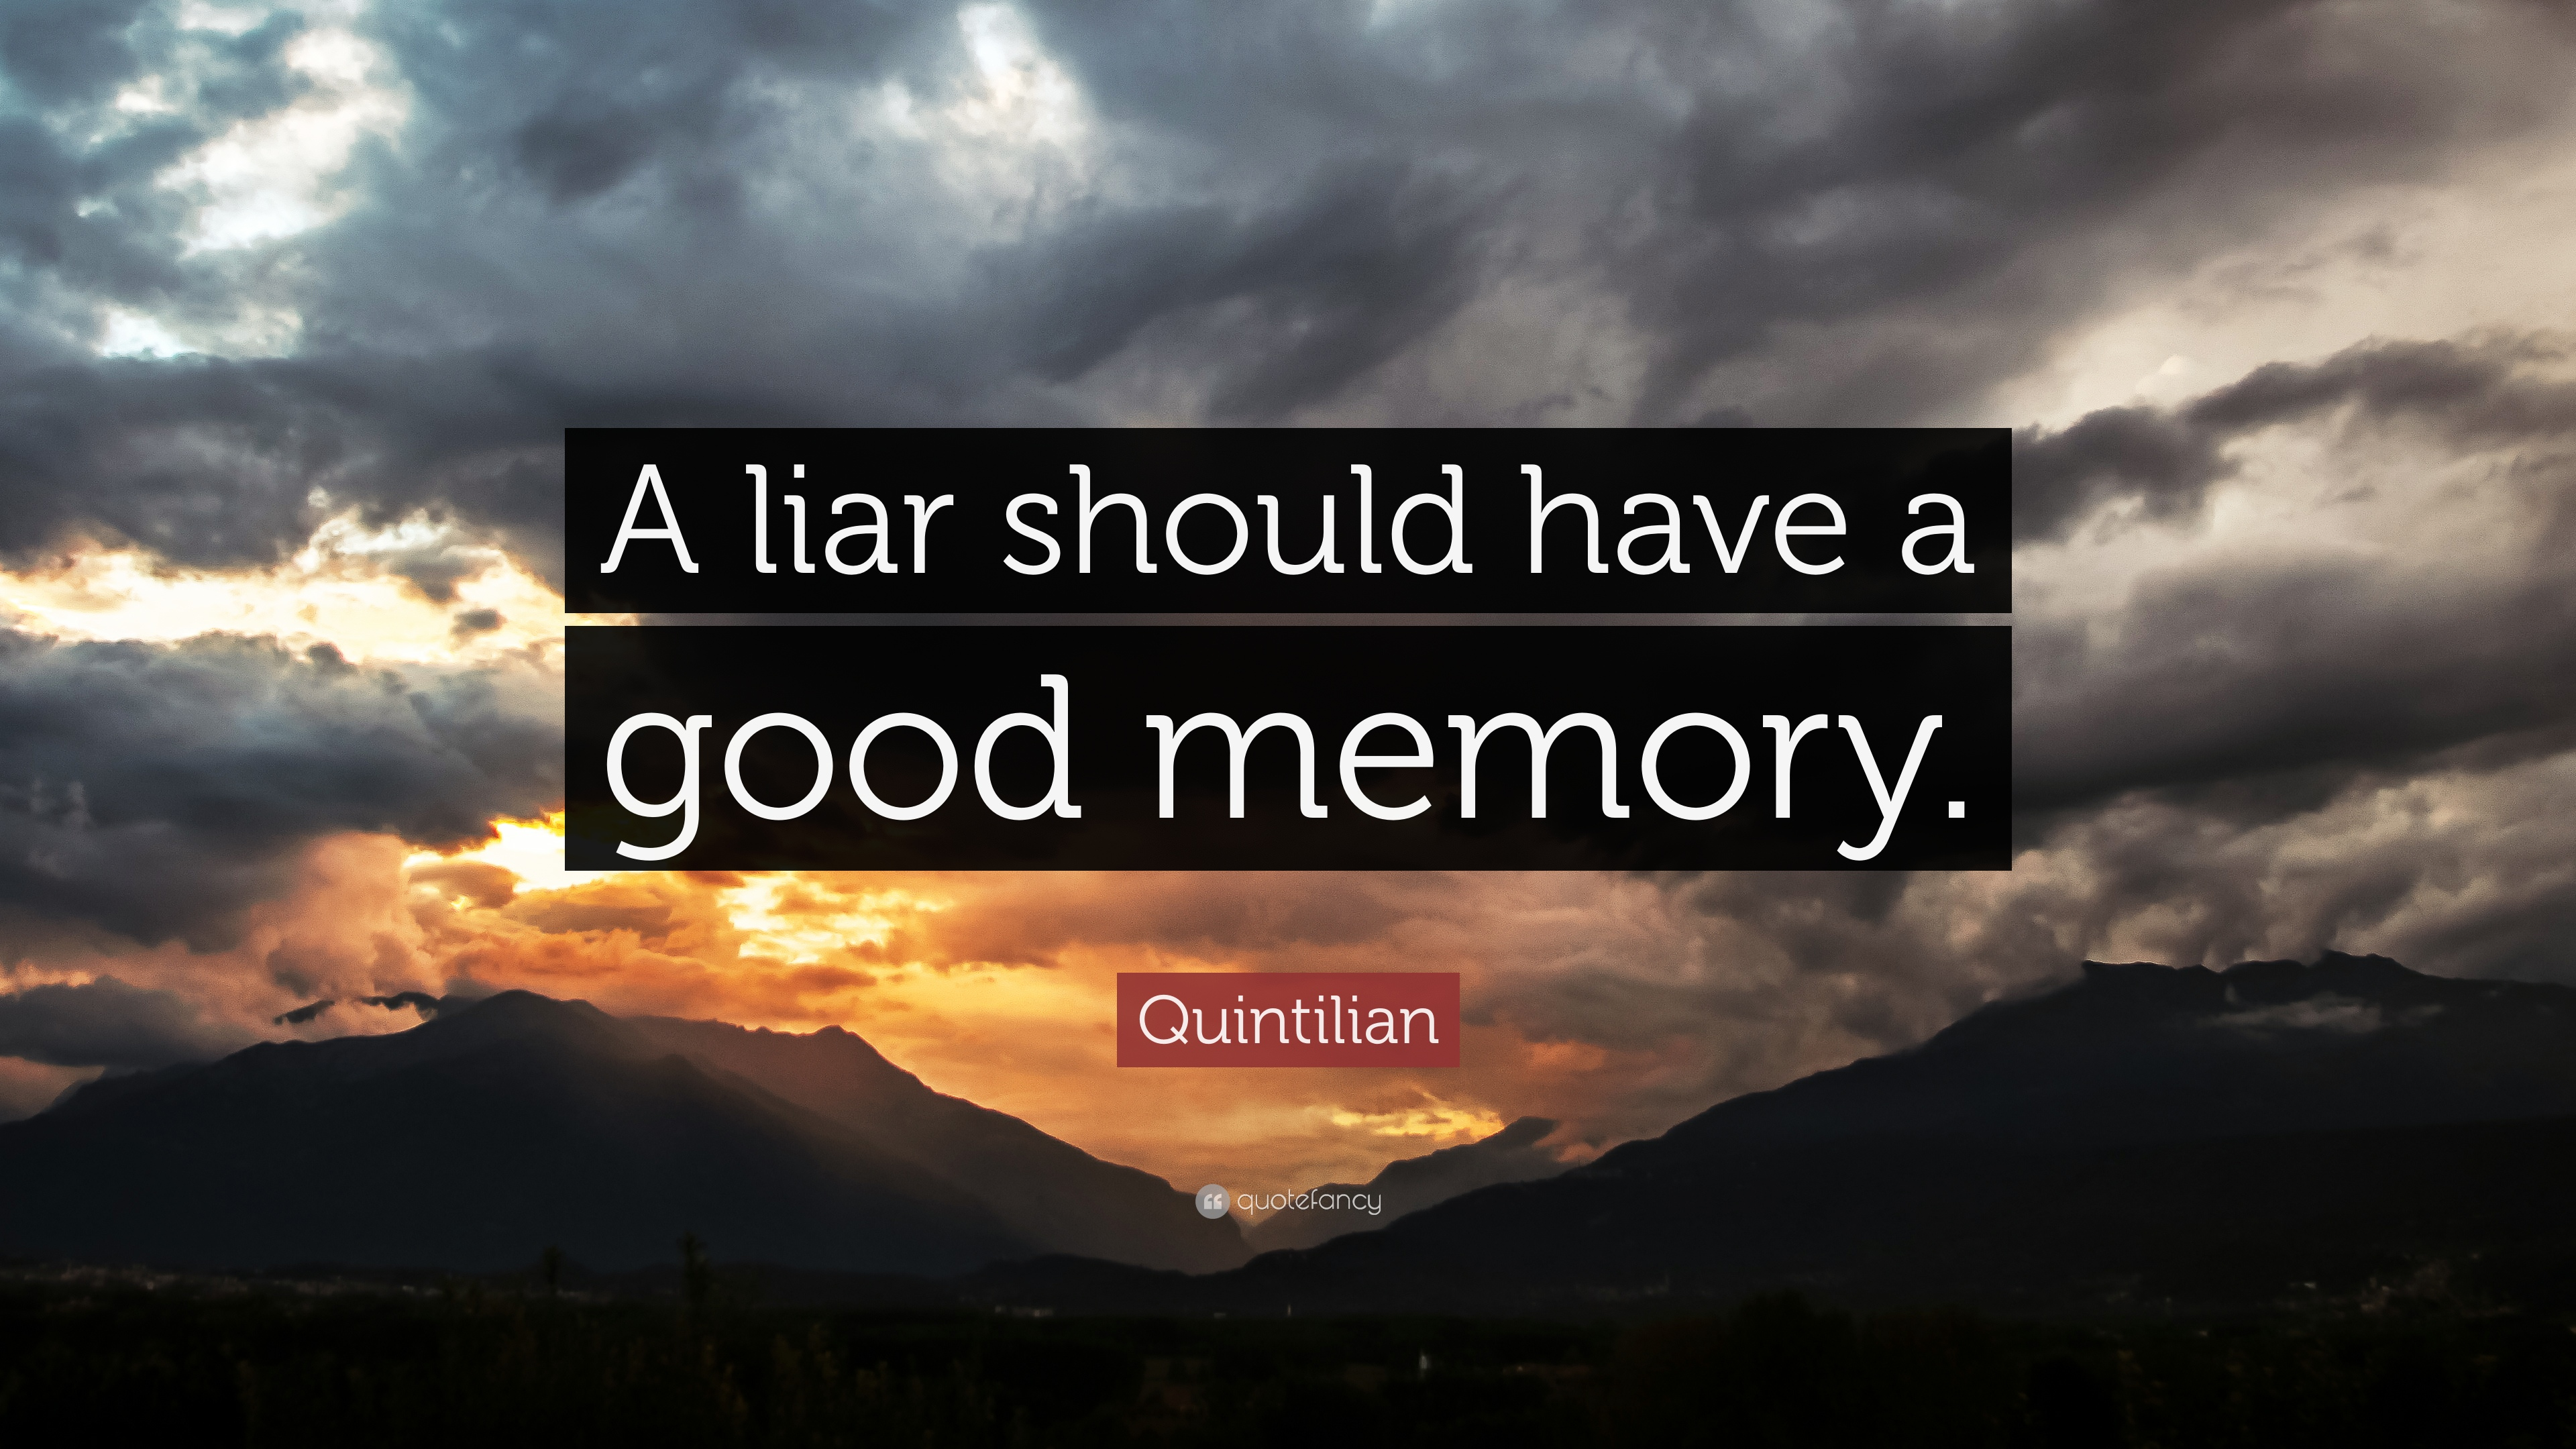 liars should have a good memory 96 proverbs about liar 1  more witnesses, all liars greek proverb 10  a liar ought to have a good memory dutch proverb 12 a liar should have a good.